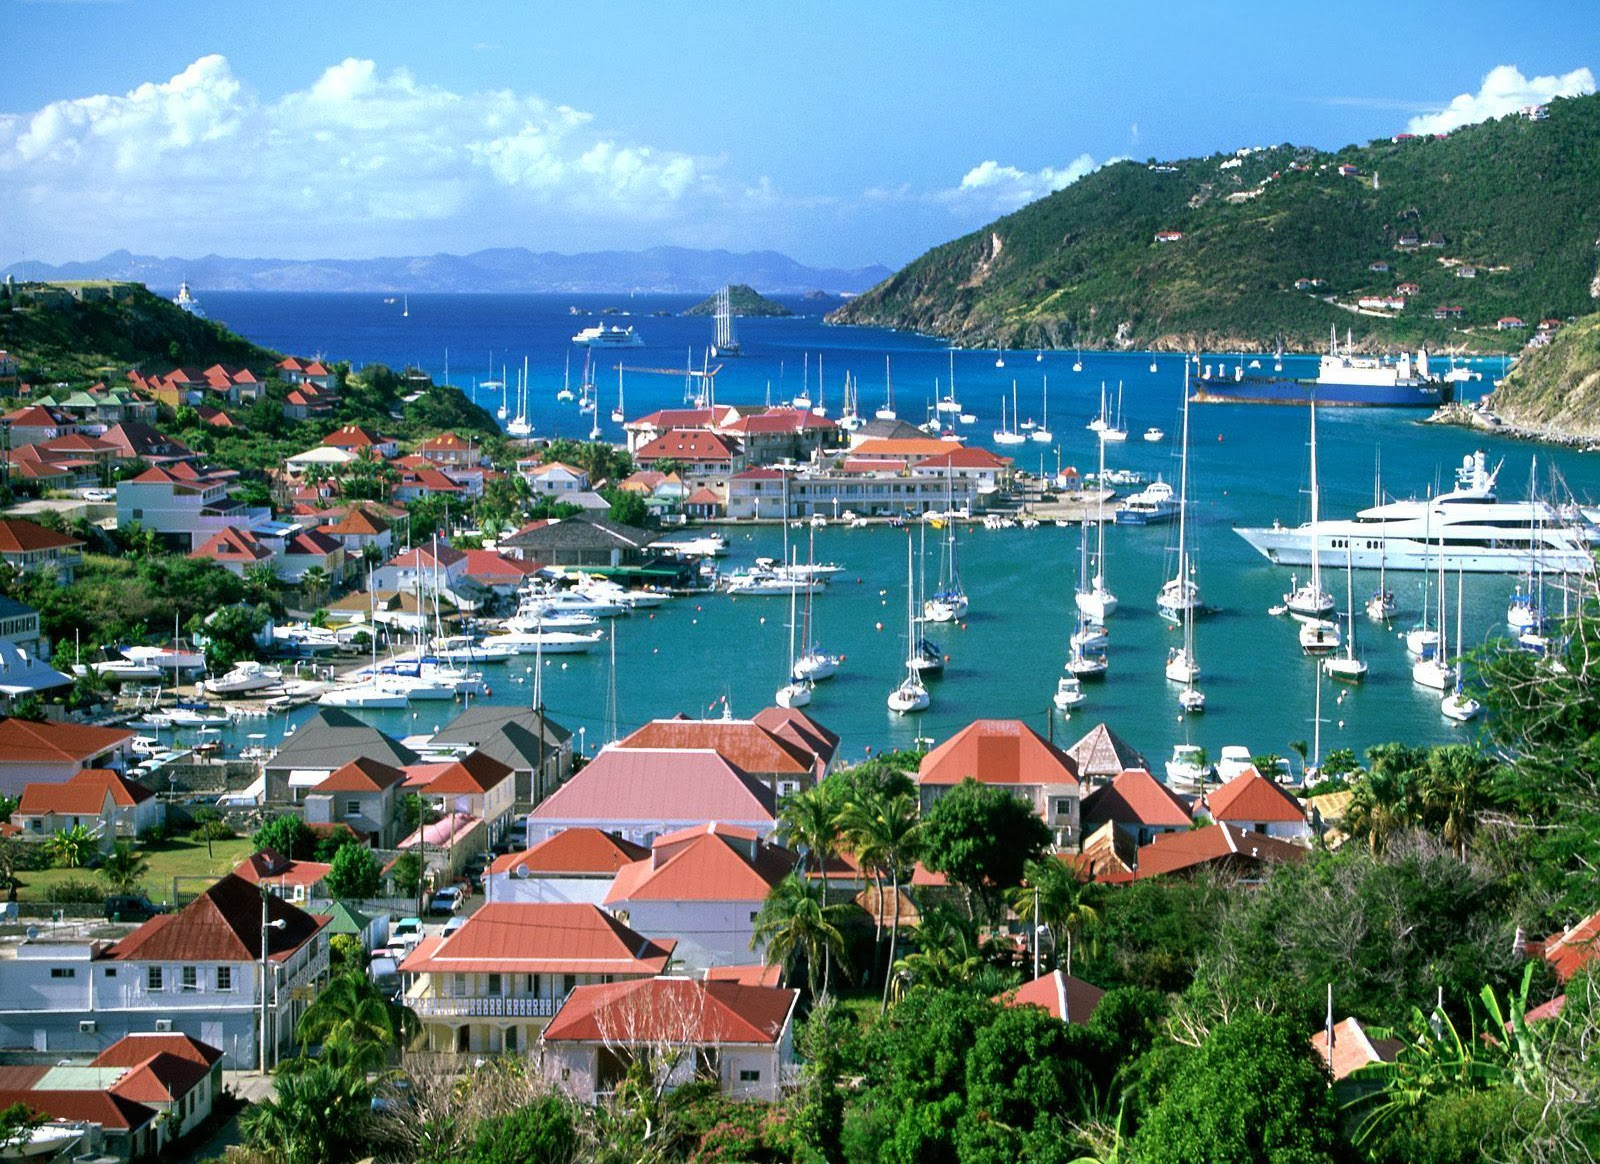 gustavia beautiful place to visit saint barthelemy beautiful traveling places. Black Bedroom Furniture Sets. Home Design Ideas